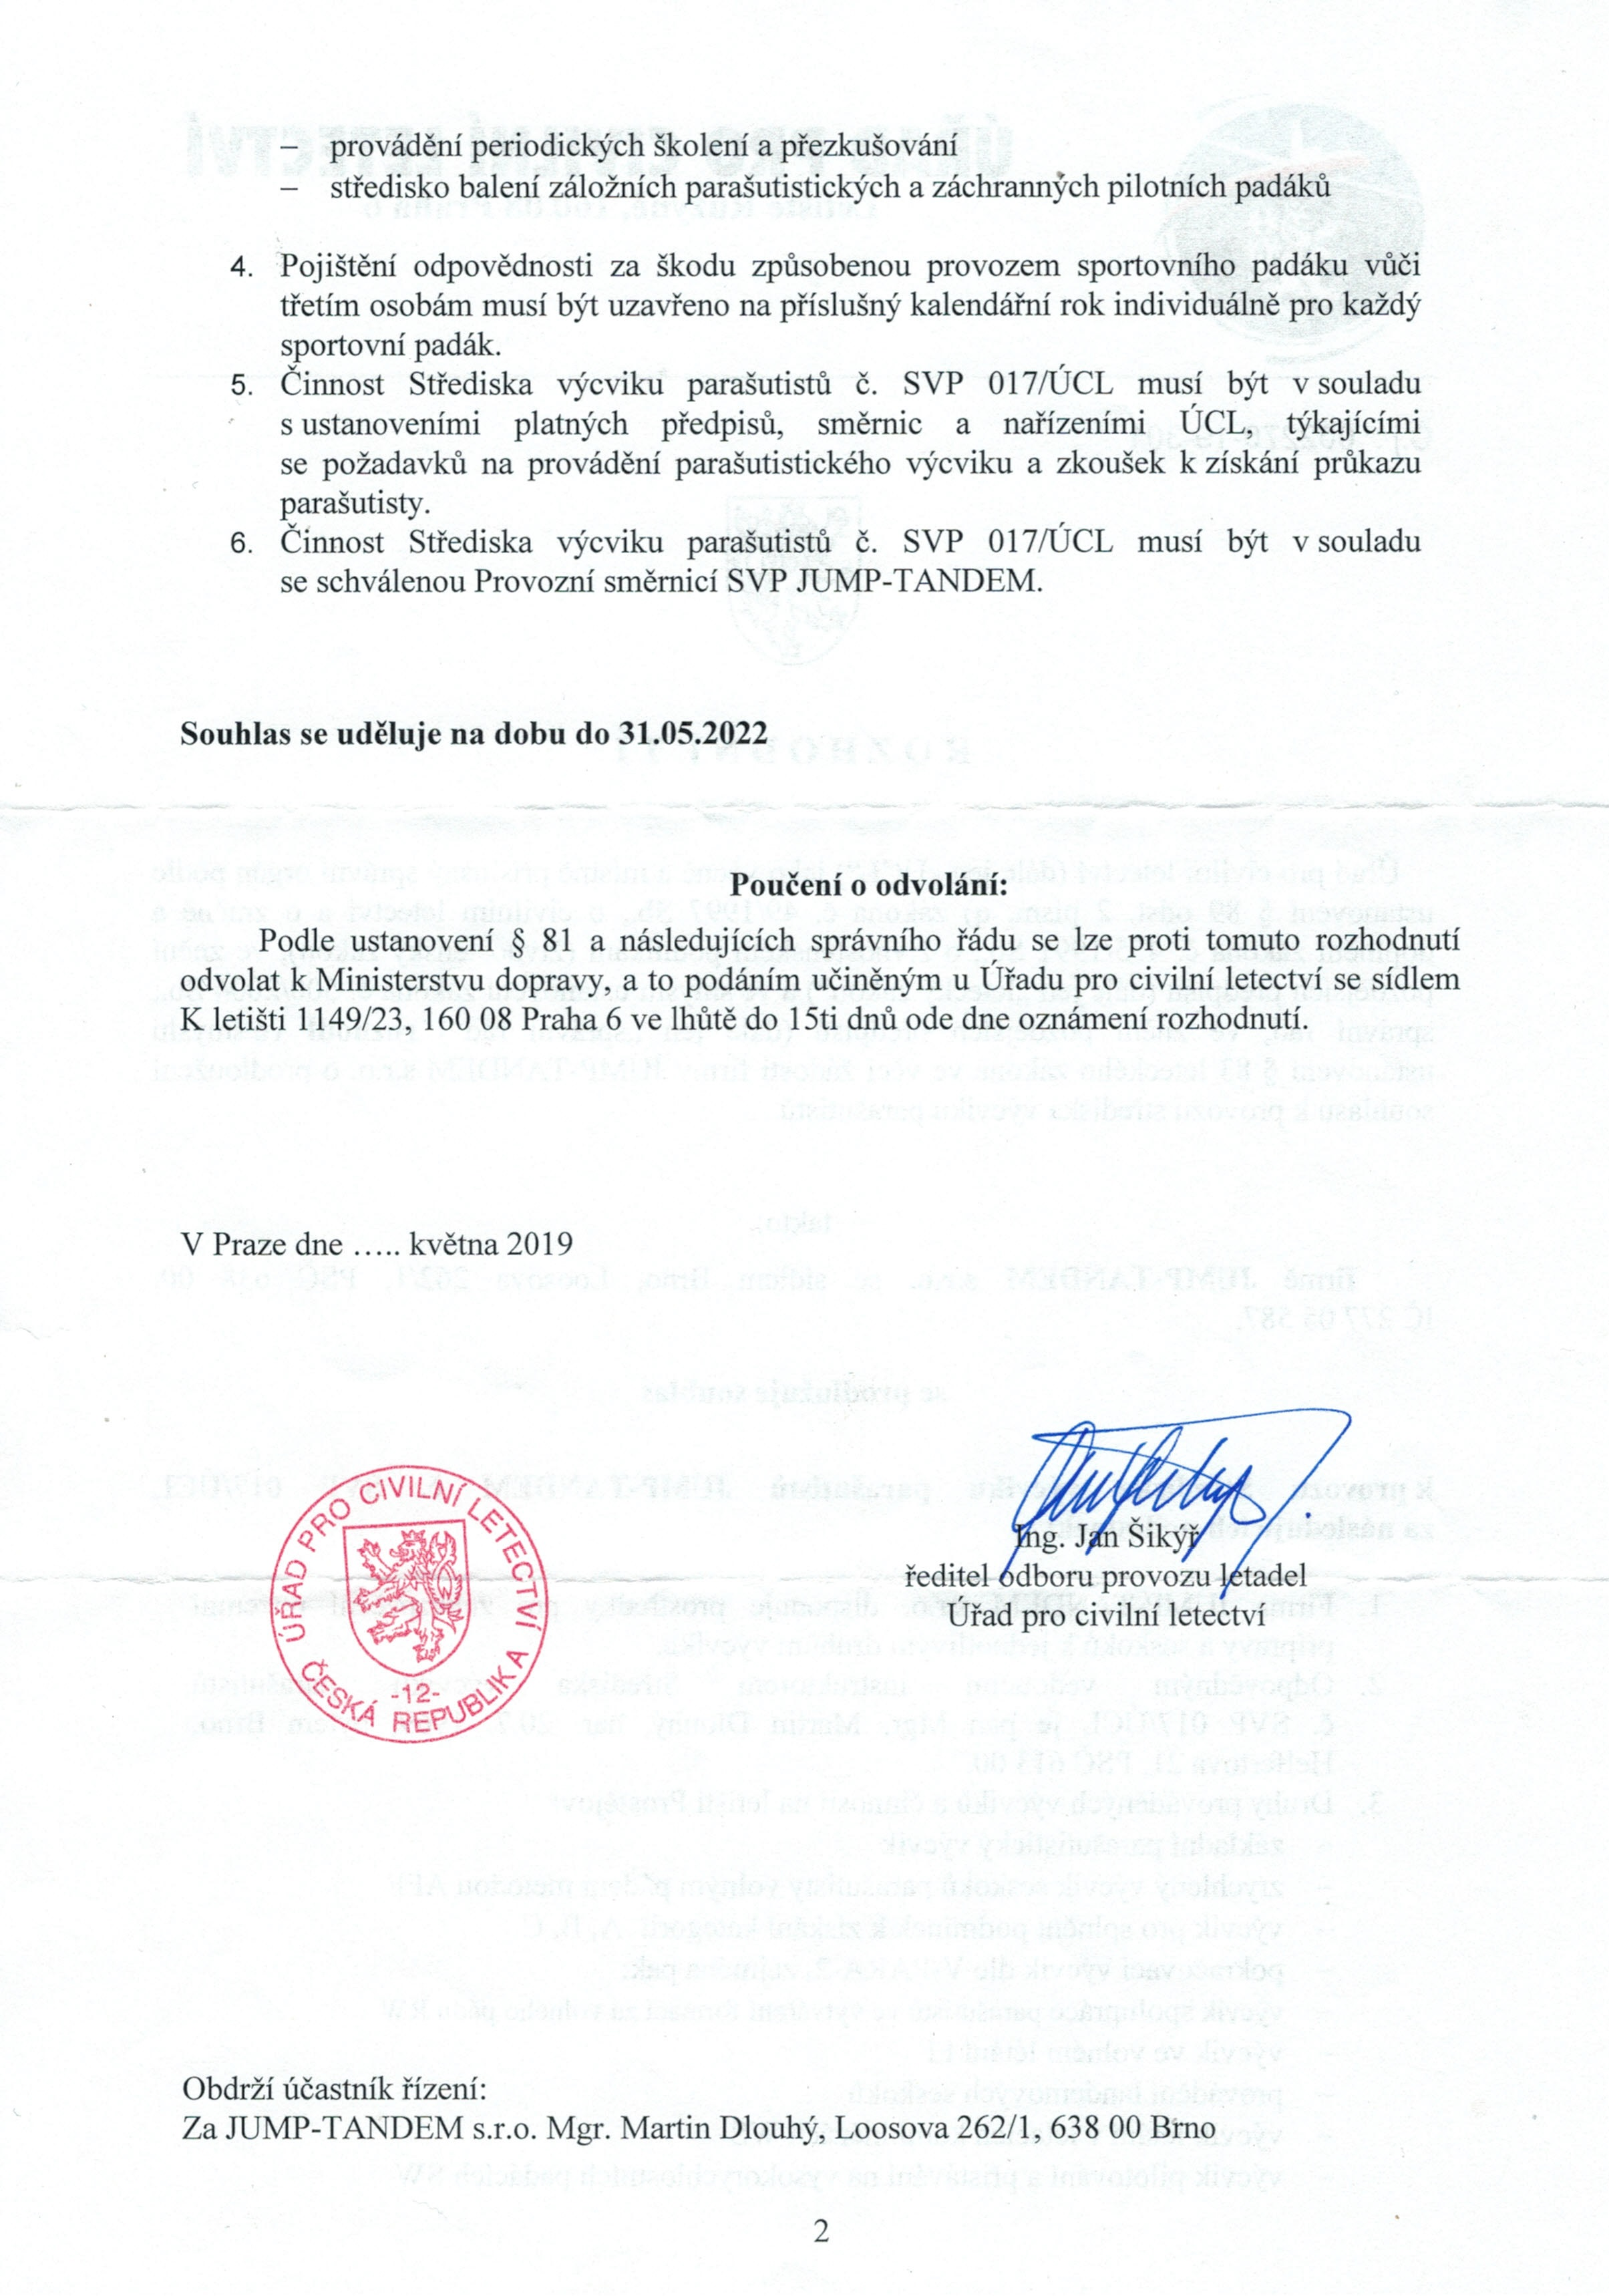 Certificate of the Training Center